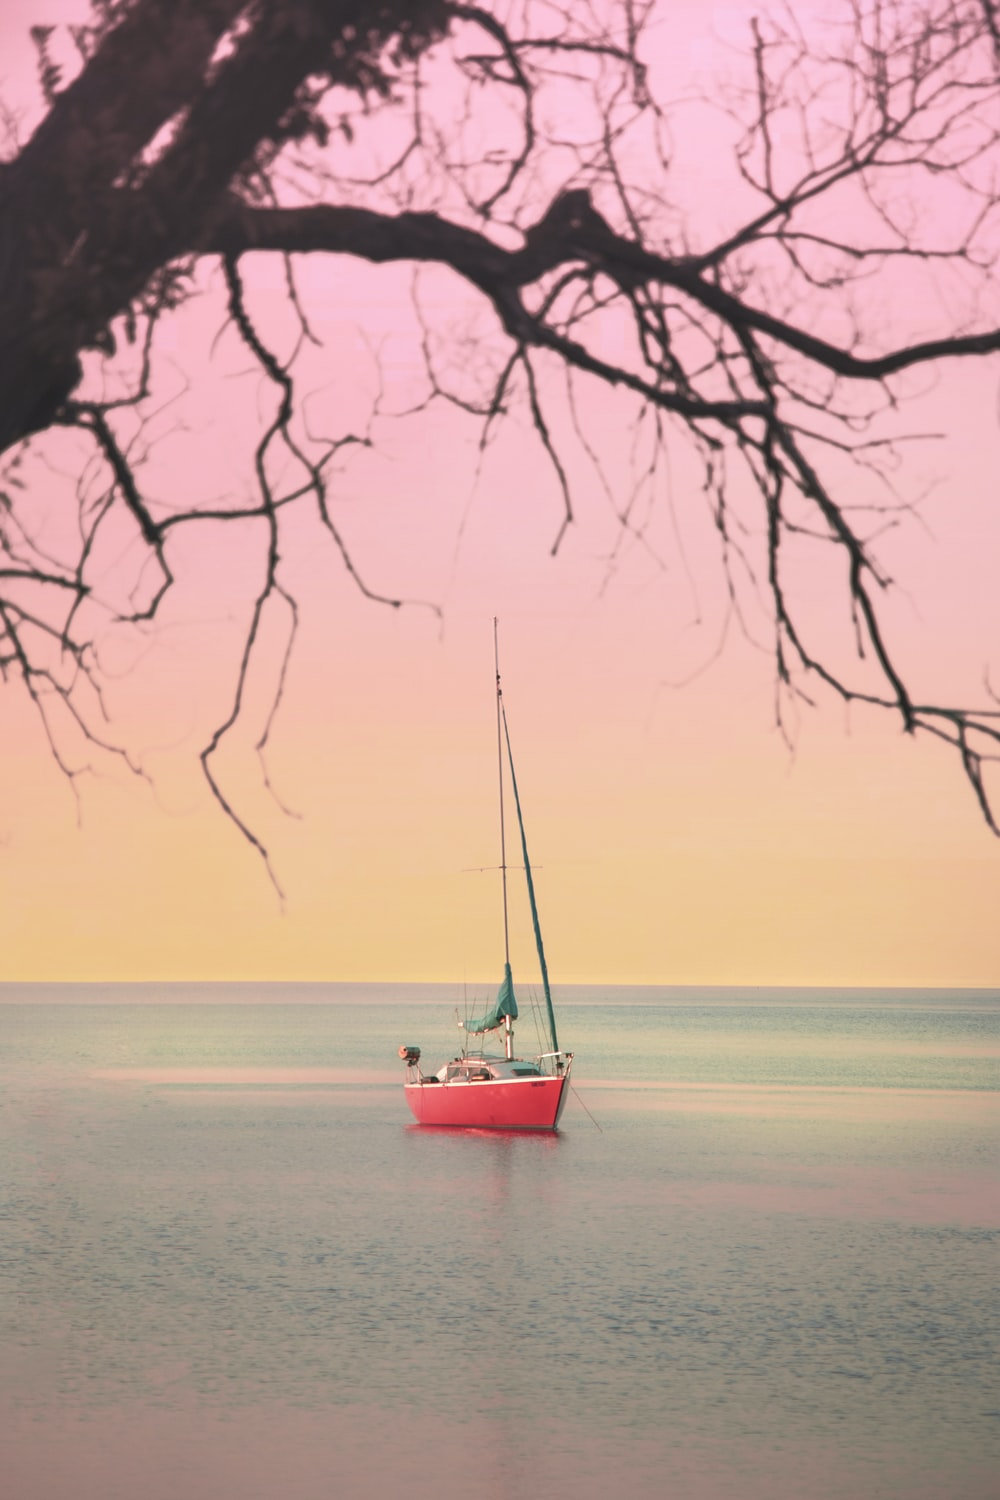 red boat on beach during sunset